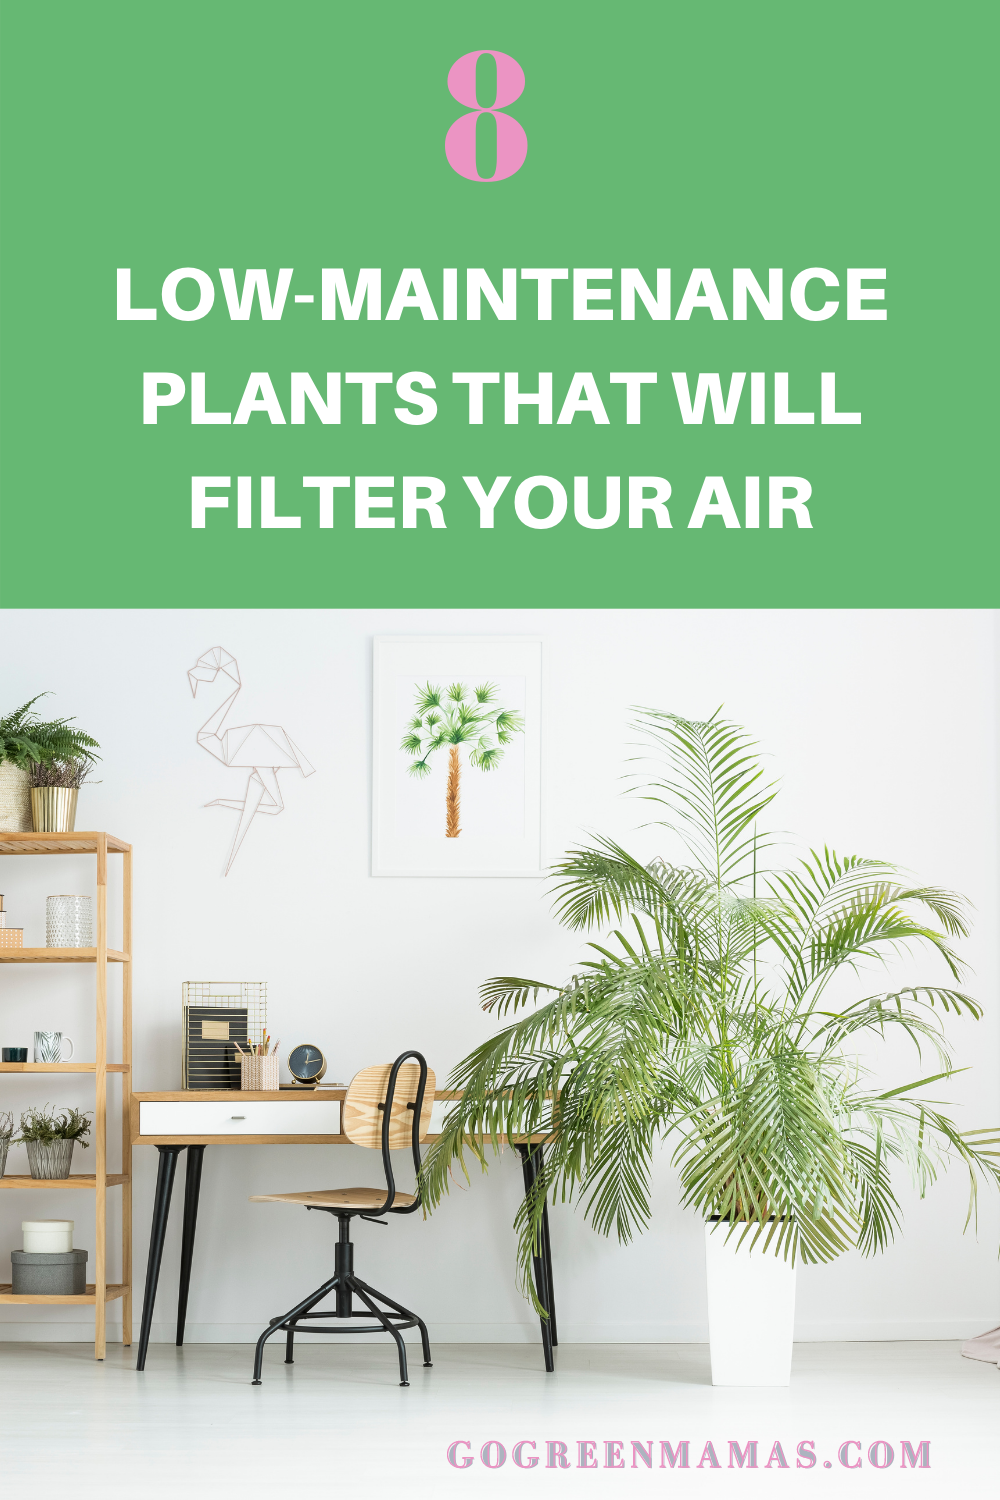 Do you love the idea of filling your home with air-filtering houseplants, but the fear of killing them all is stopping you? Here are 8 low-maintenance houseplants that are great at filtering indoor air. You don't need a greenthumb to succeed at growing these plants. #gogreenmamas #lowmaintenanceplants #airfilteringplants #houseplants #toxinfreehome